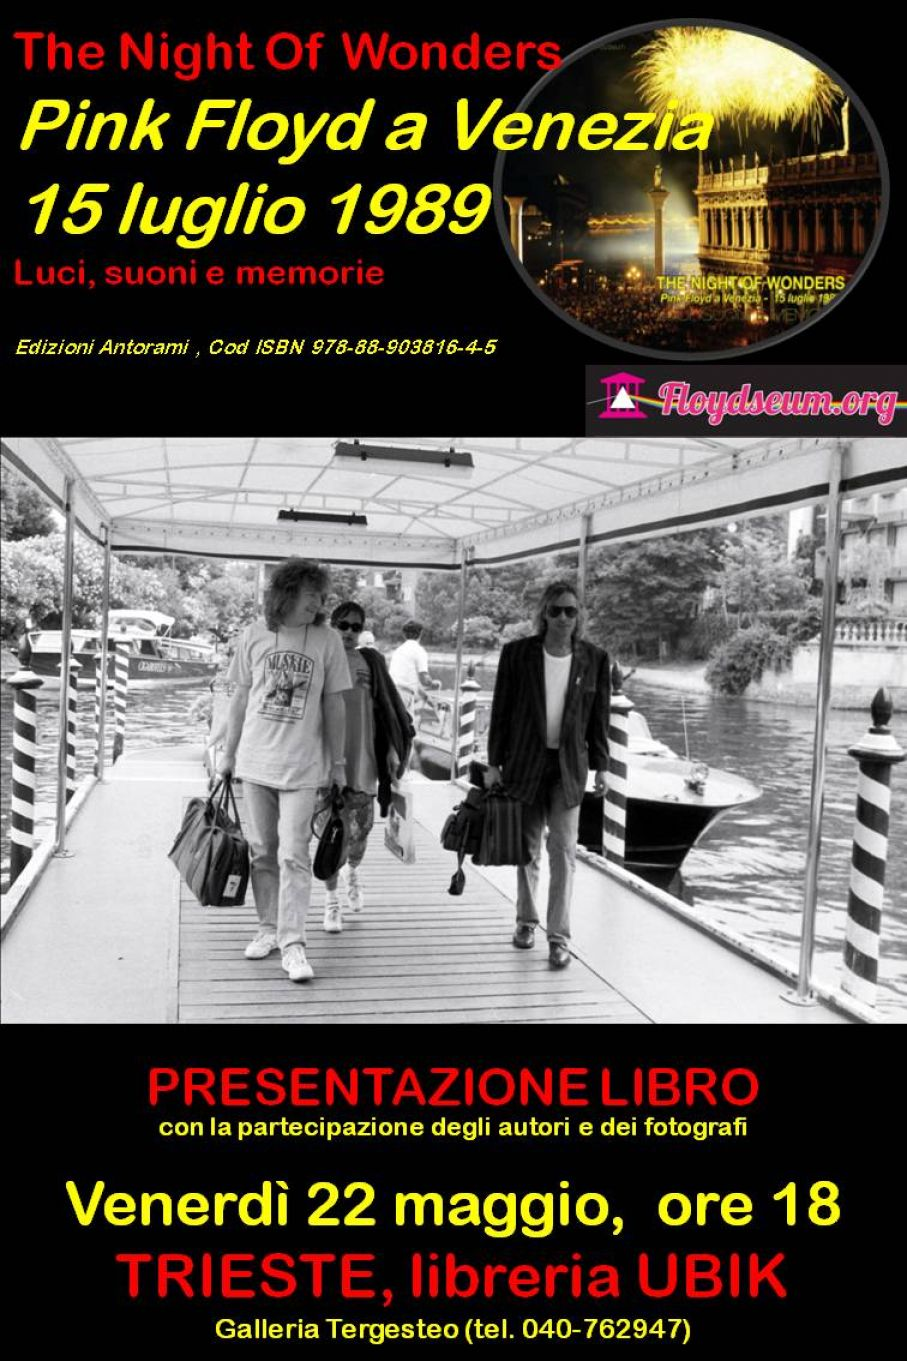 The Night of Wonders book presentation at Ubik, Trieste